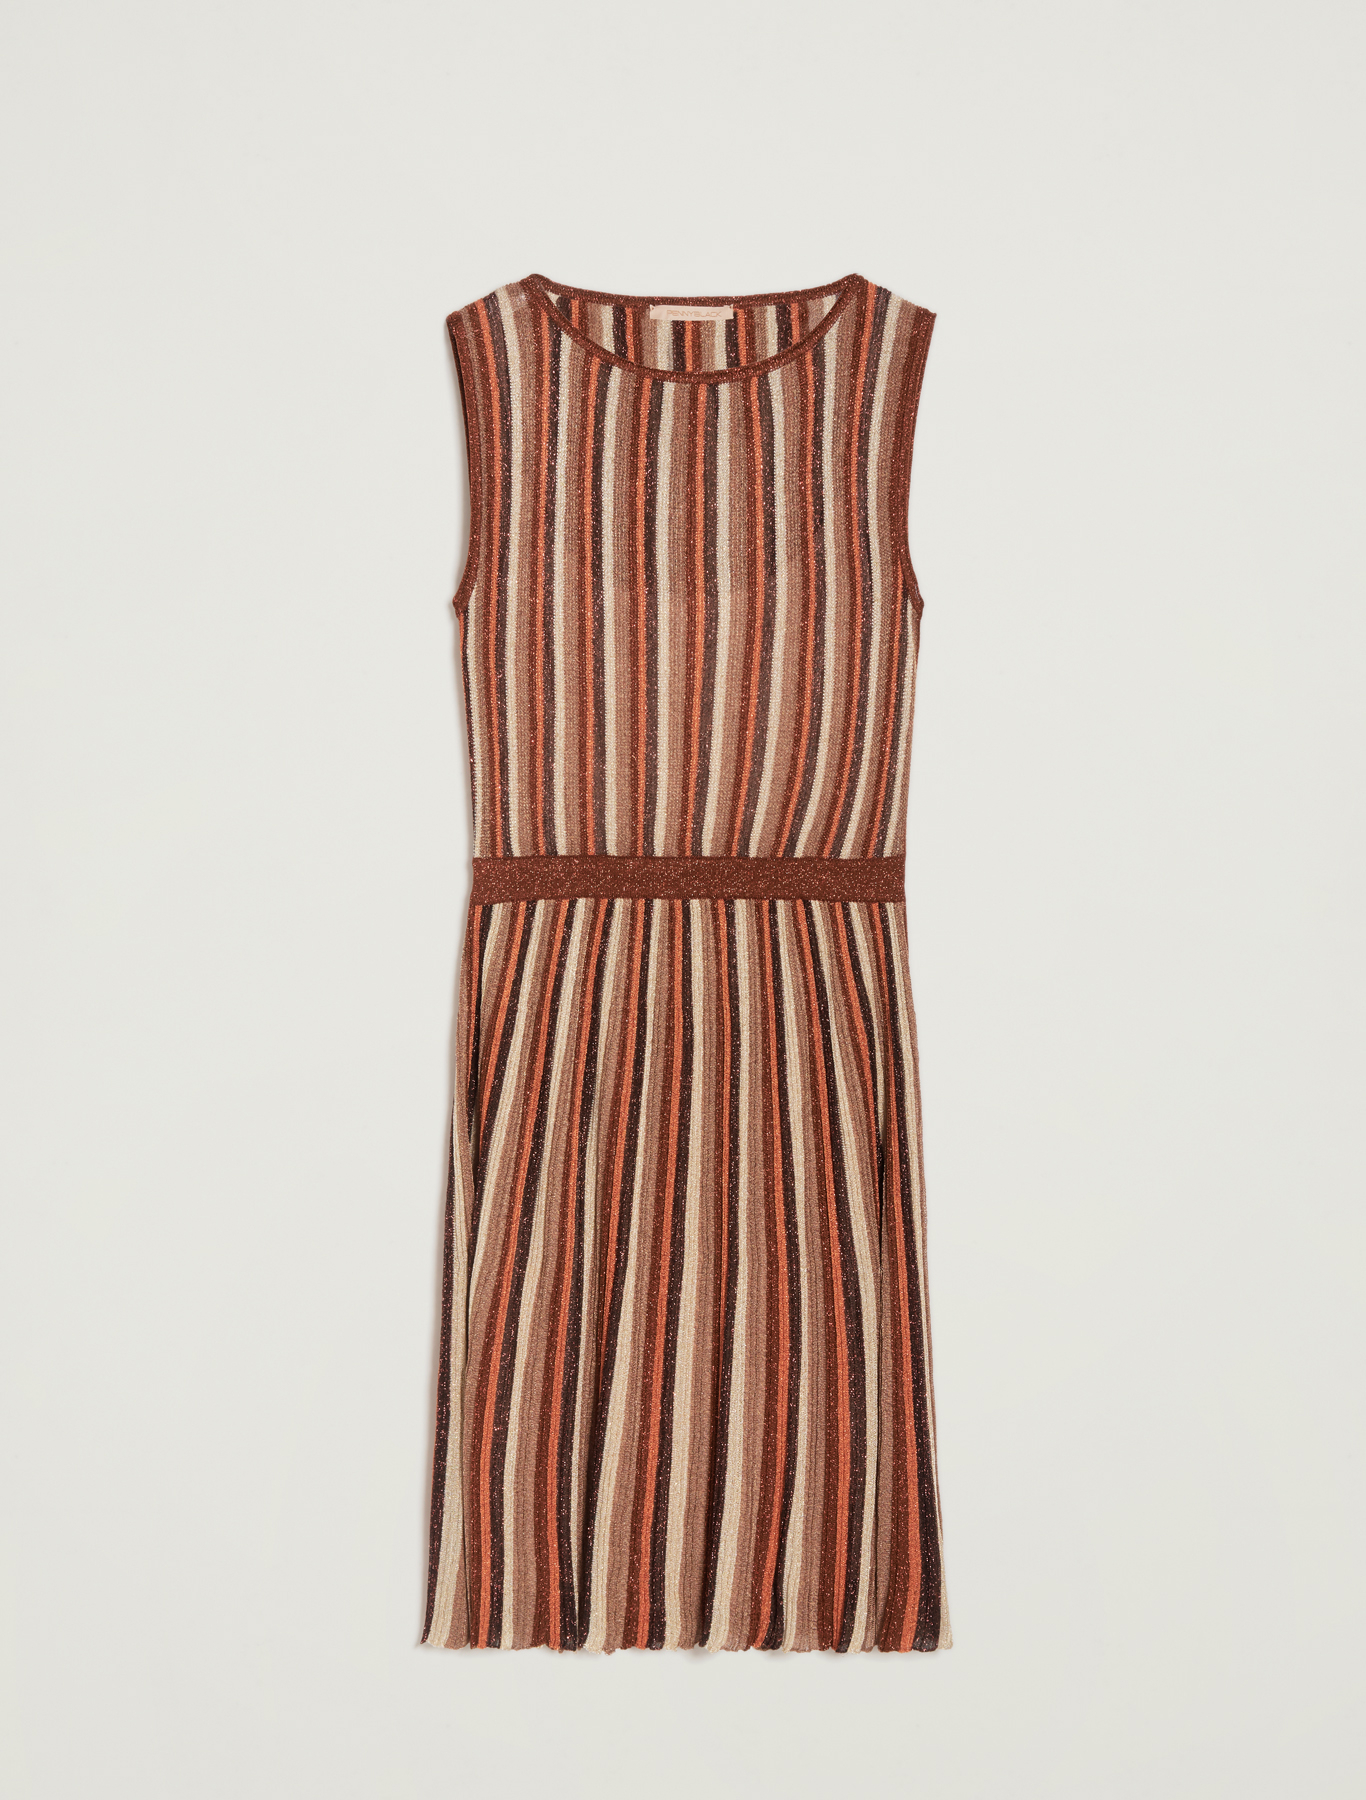 Lamé knit dress - brown - pennyblack